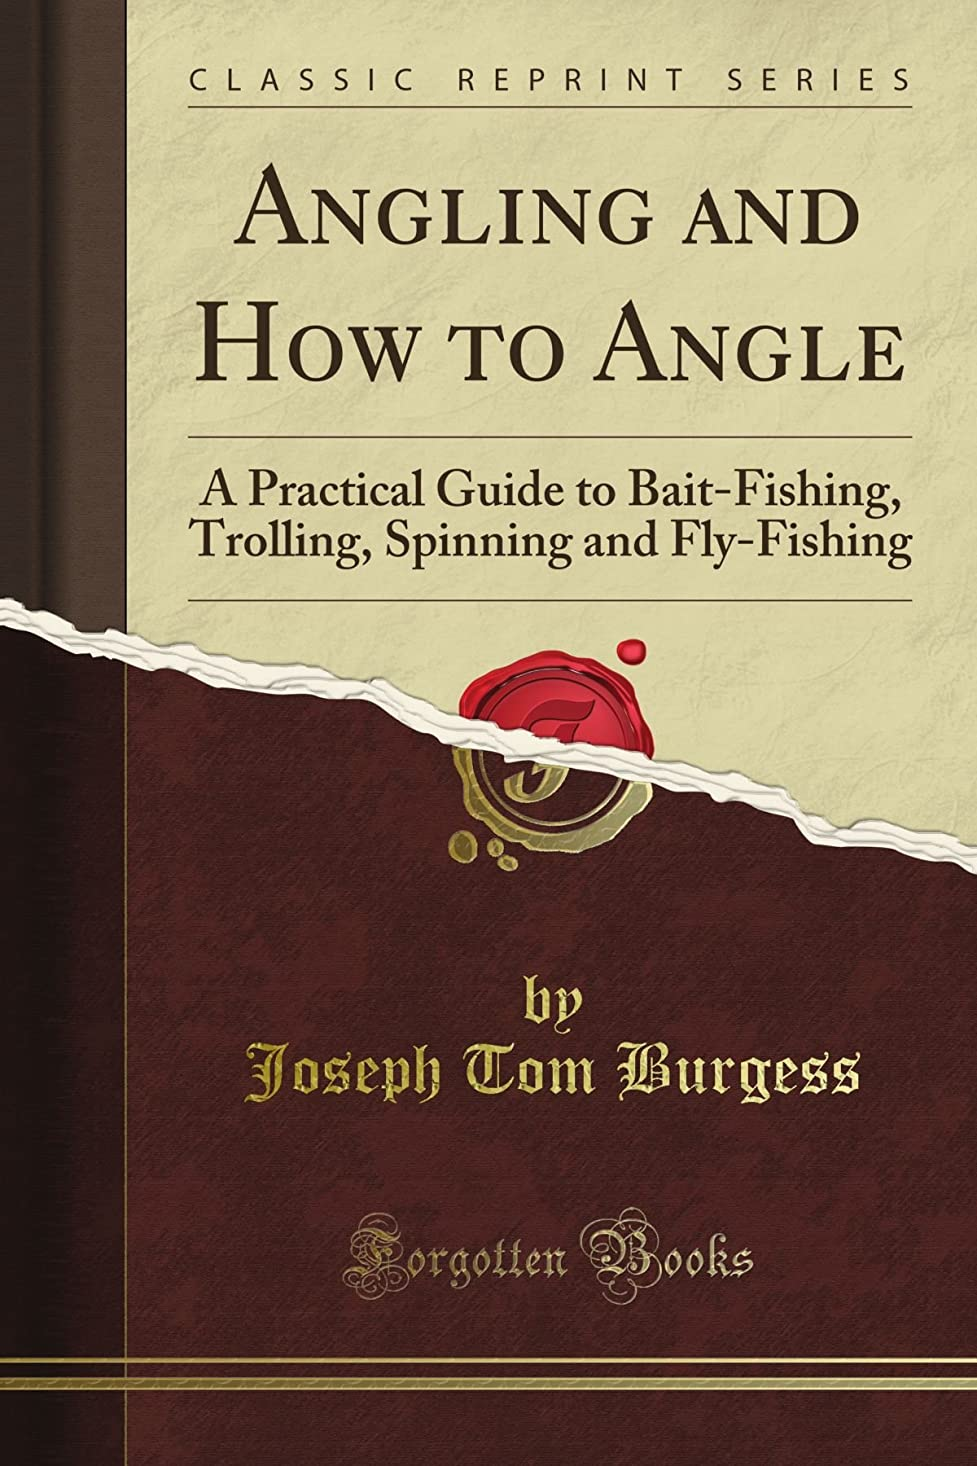 ポイント一般化する差別Angling and How to Angle: A Practical Guide to Bait-Fishing, Trolling, Spinning and Fly-Fishing (Classic Reprint)